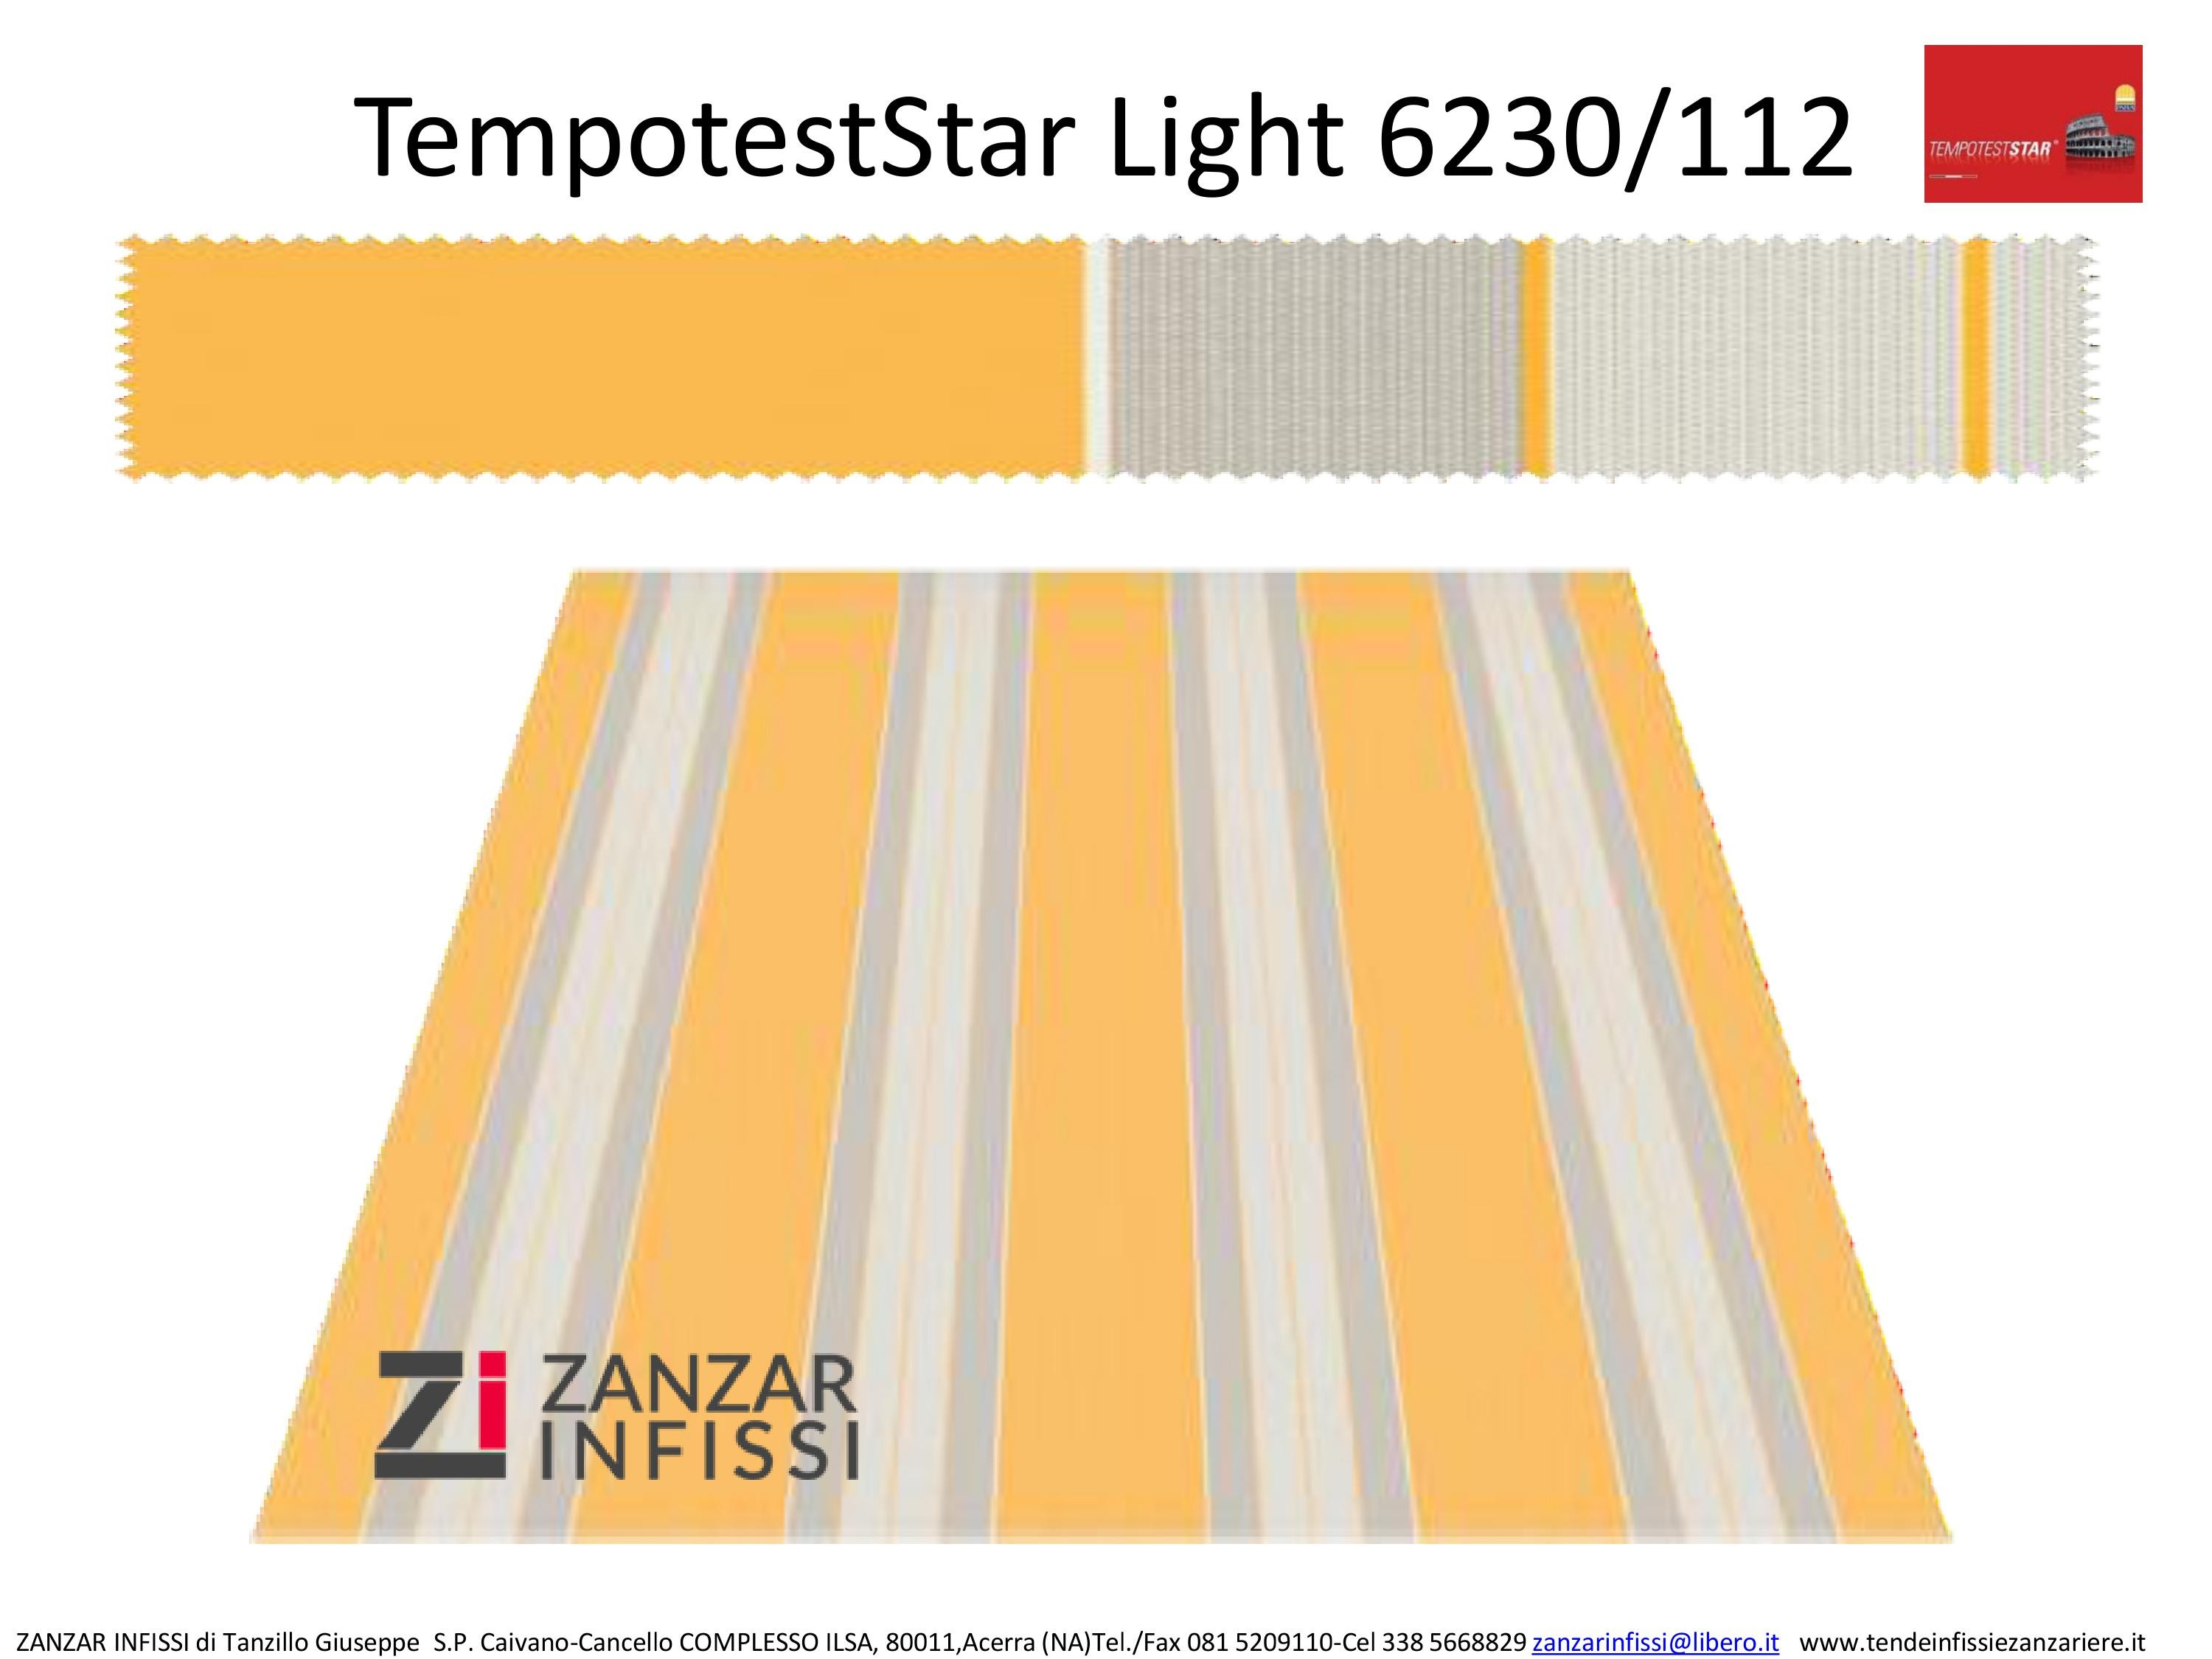 Tempotest star light 6230/112